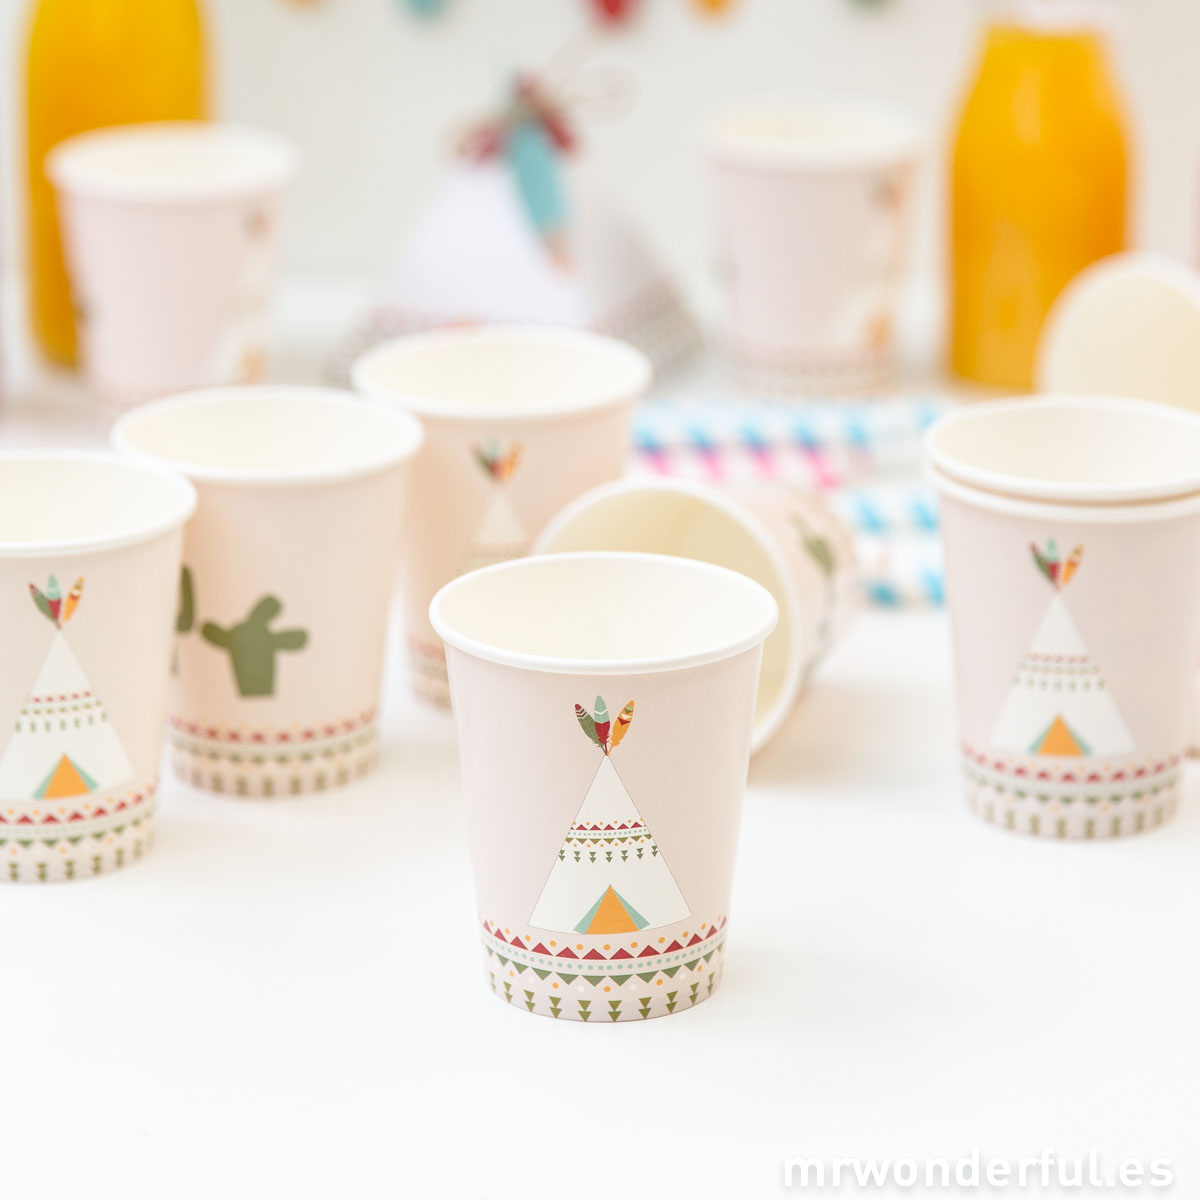 Mr.Wonderful set de vasos de papel con estampado fiesta india